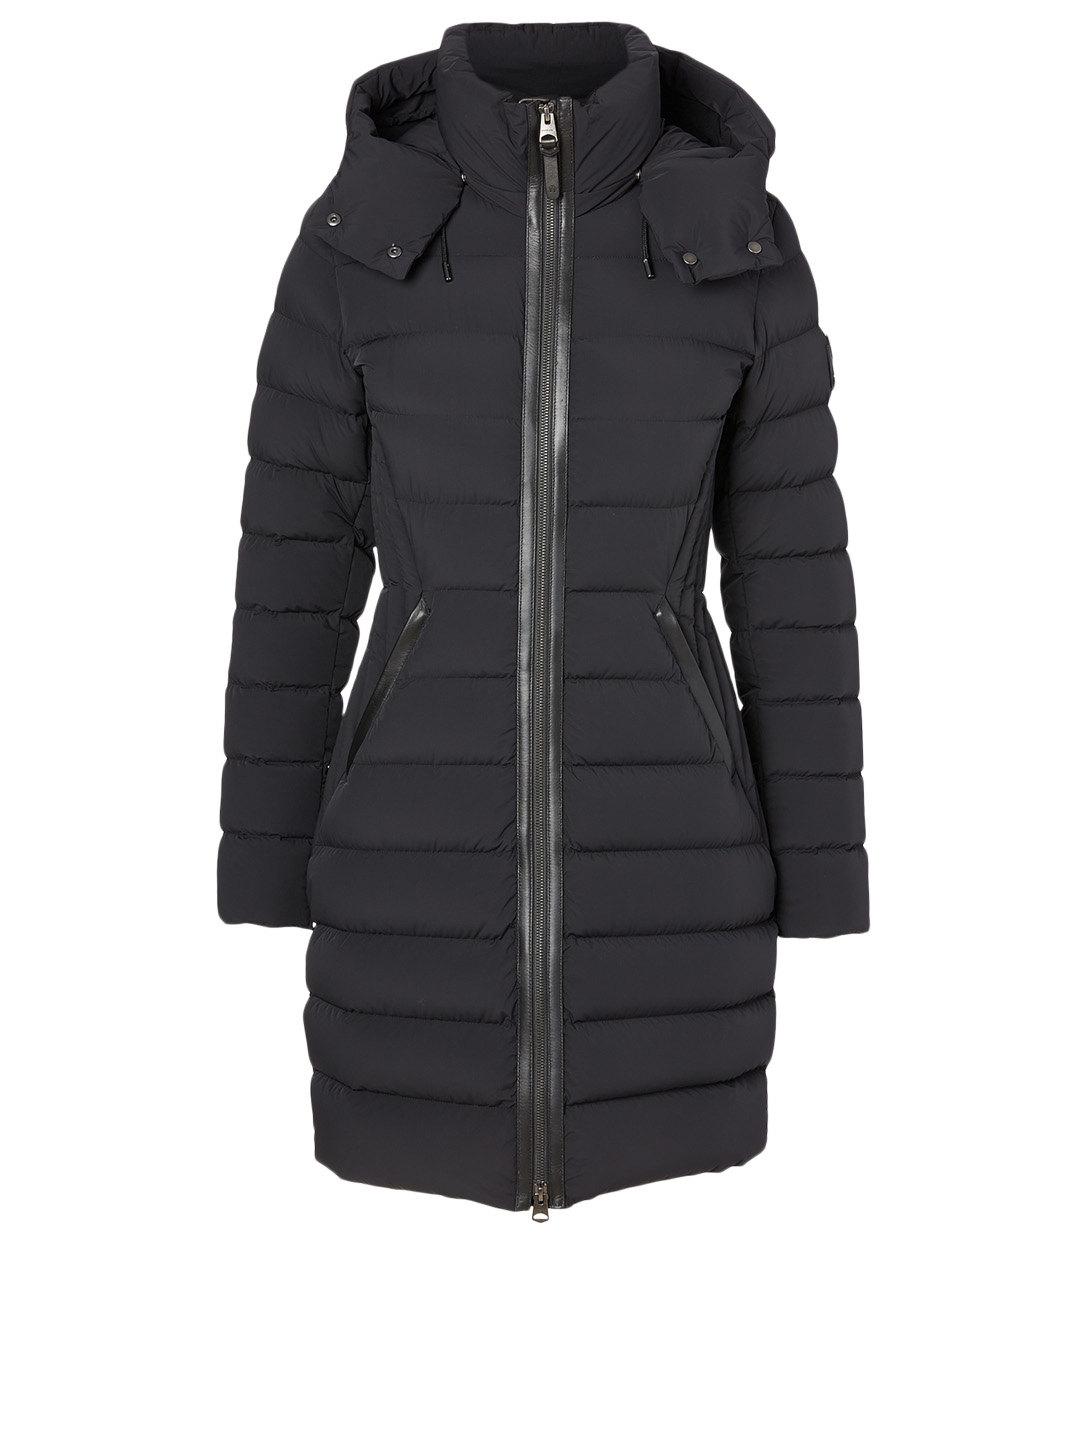 MACKAGE Farren Quilted Down Coat Women's Black